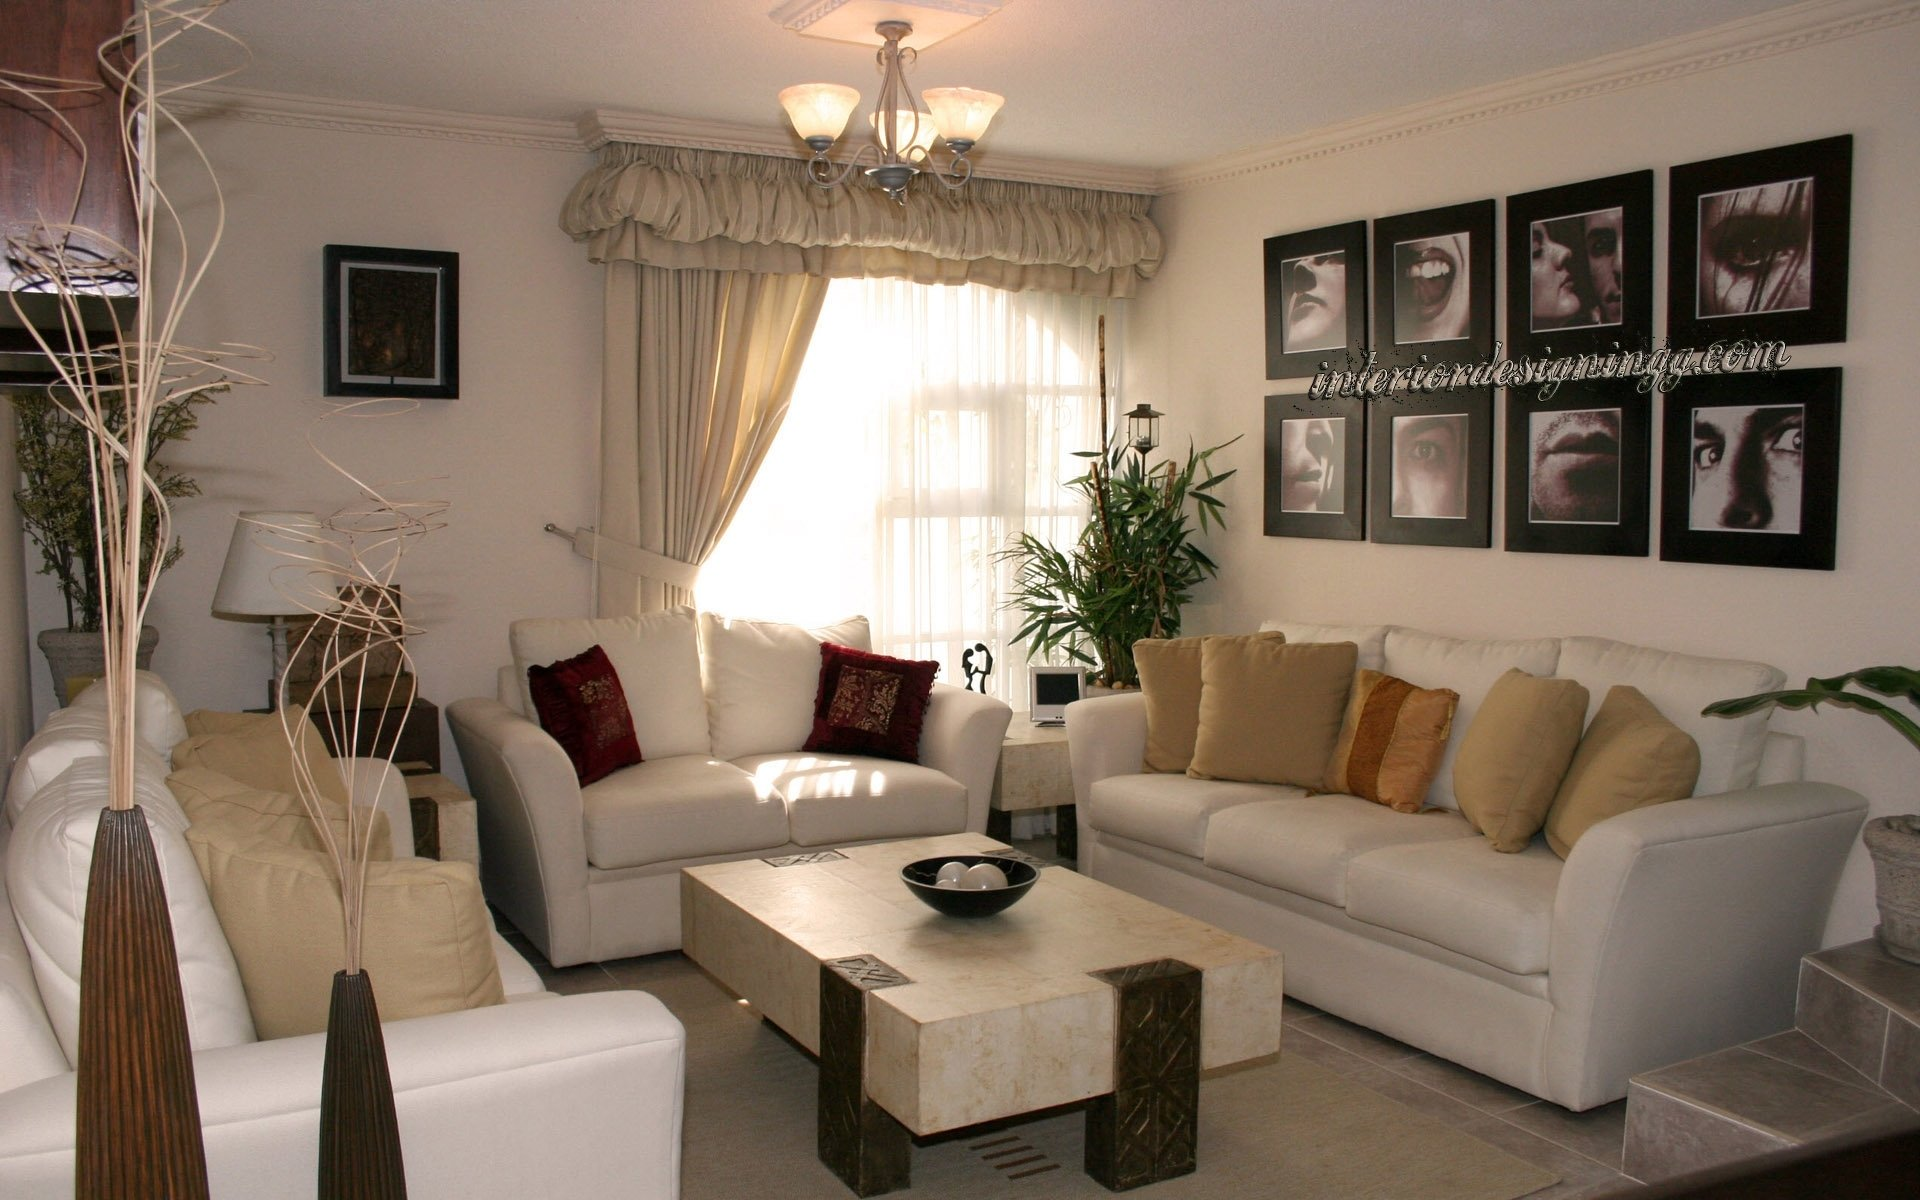 10 Attractive Decorating Ideas For Small Living Room how to decorate small drawing room with cheap price very small 2020